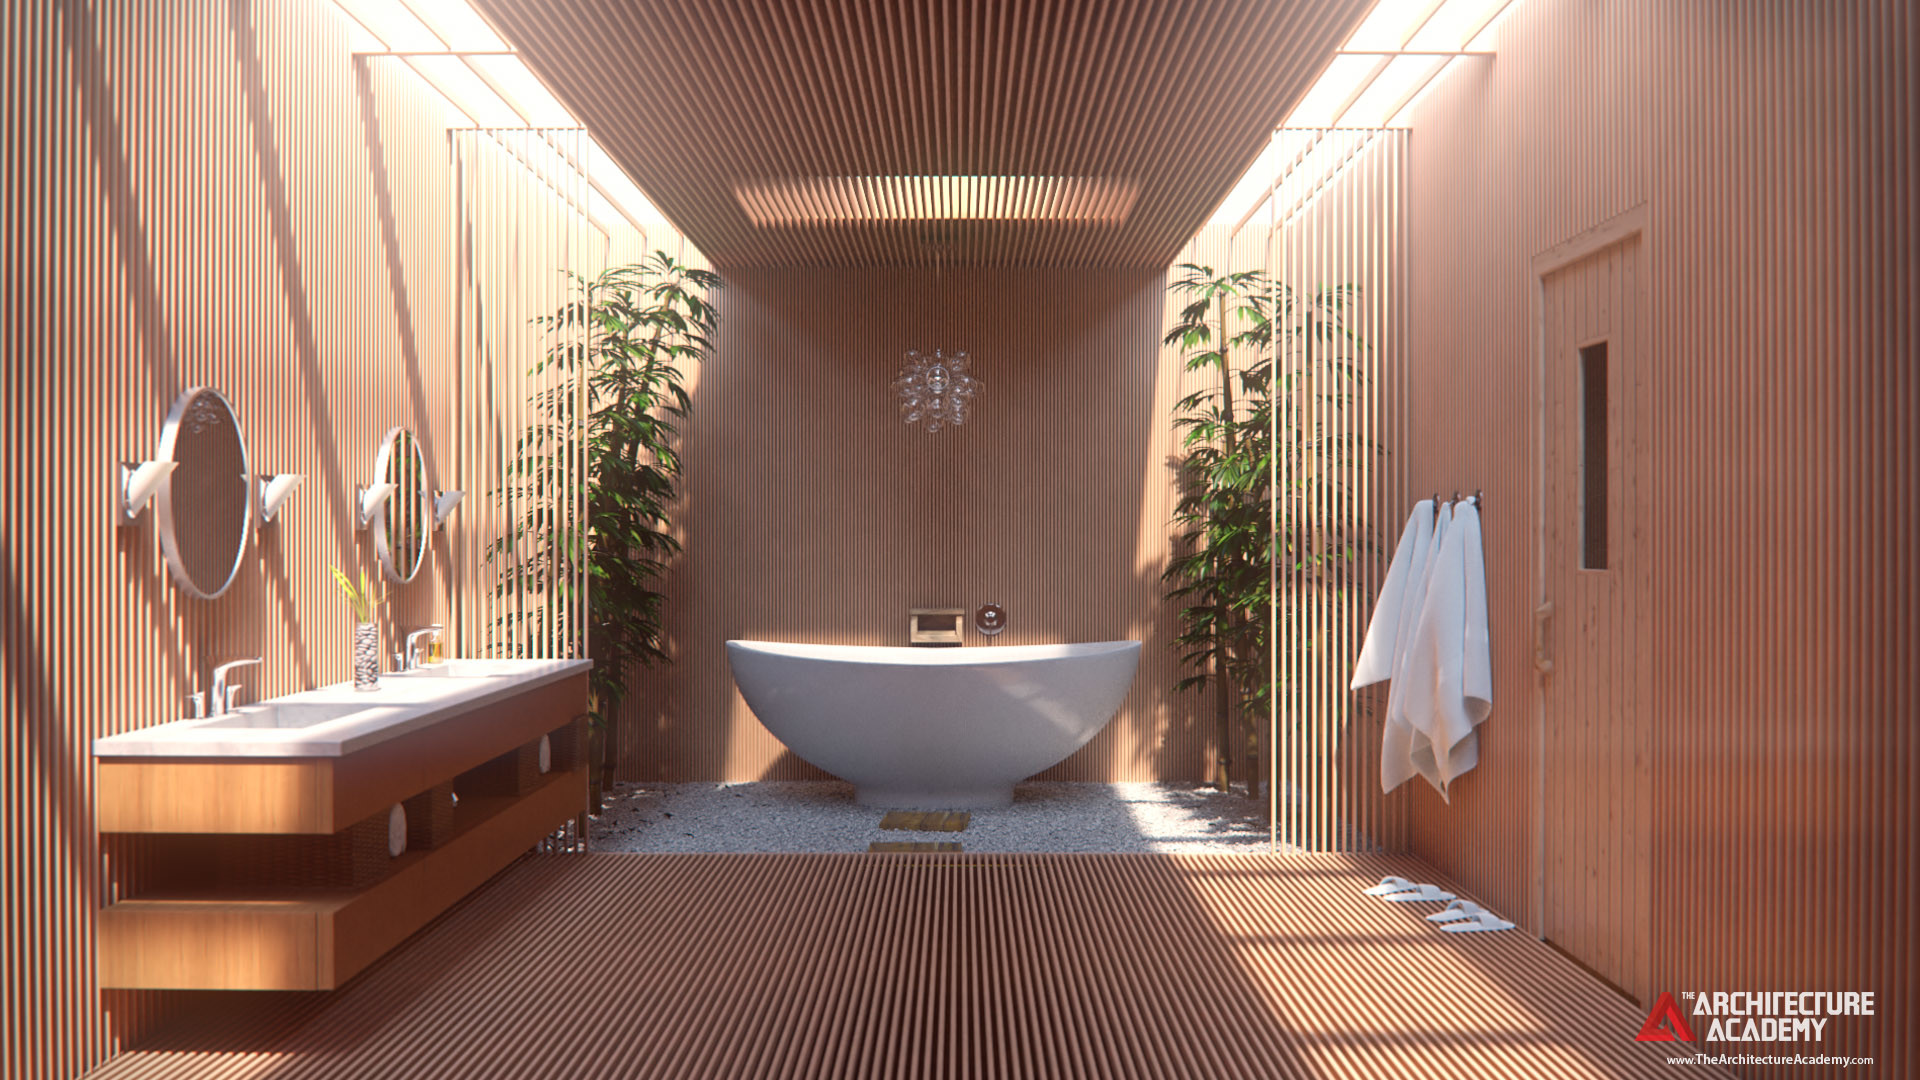 ArtStation - Modern Japanese Bathroom, Andrew Price